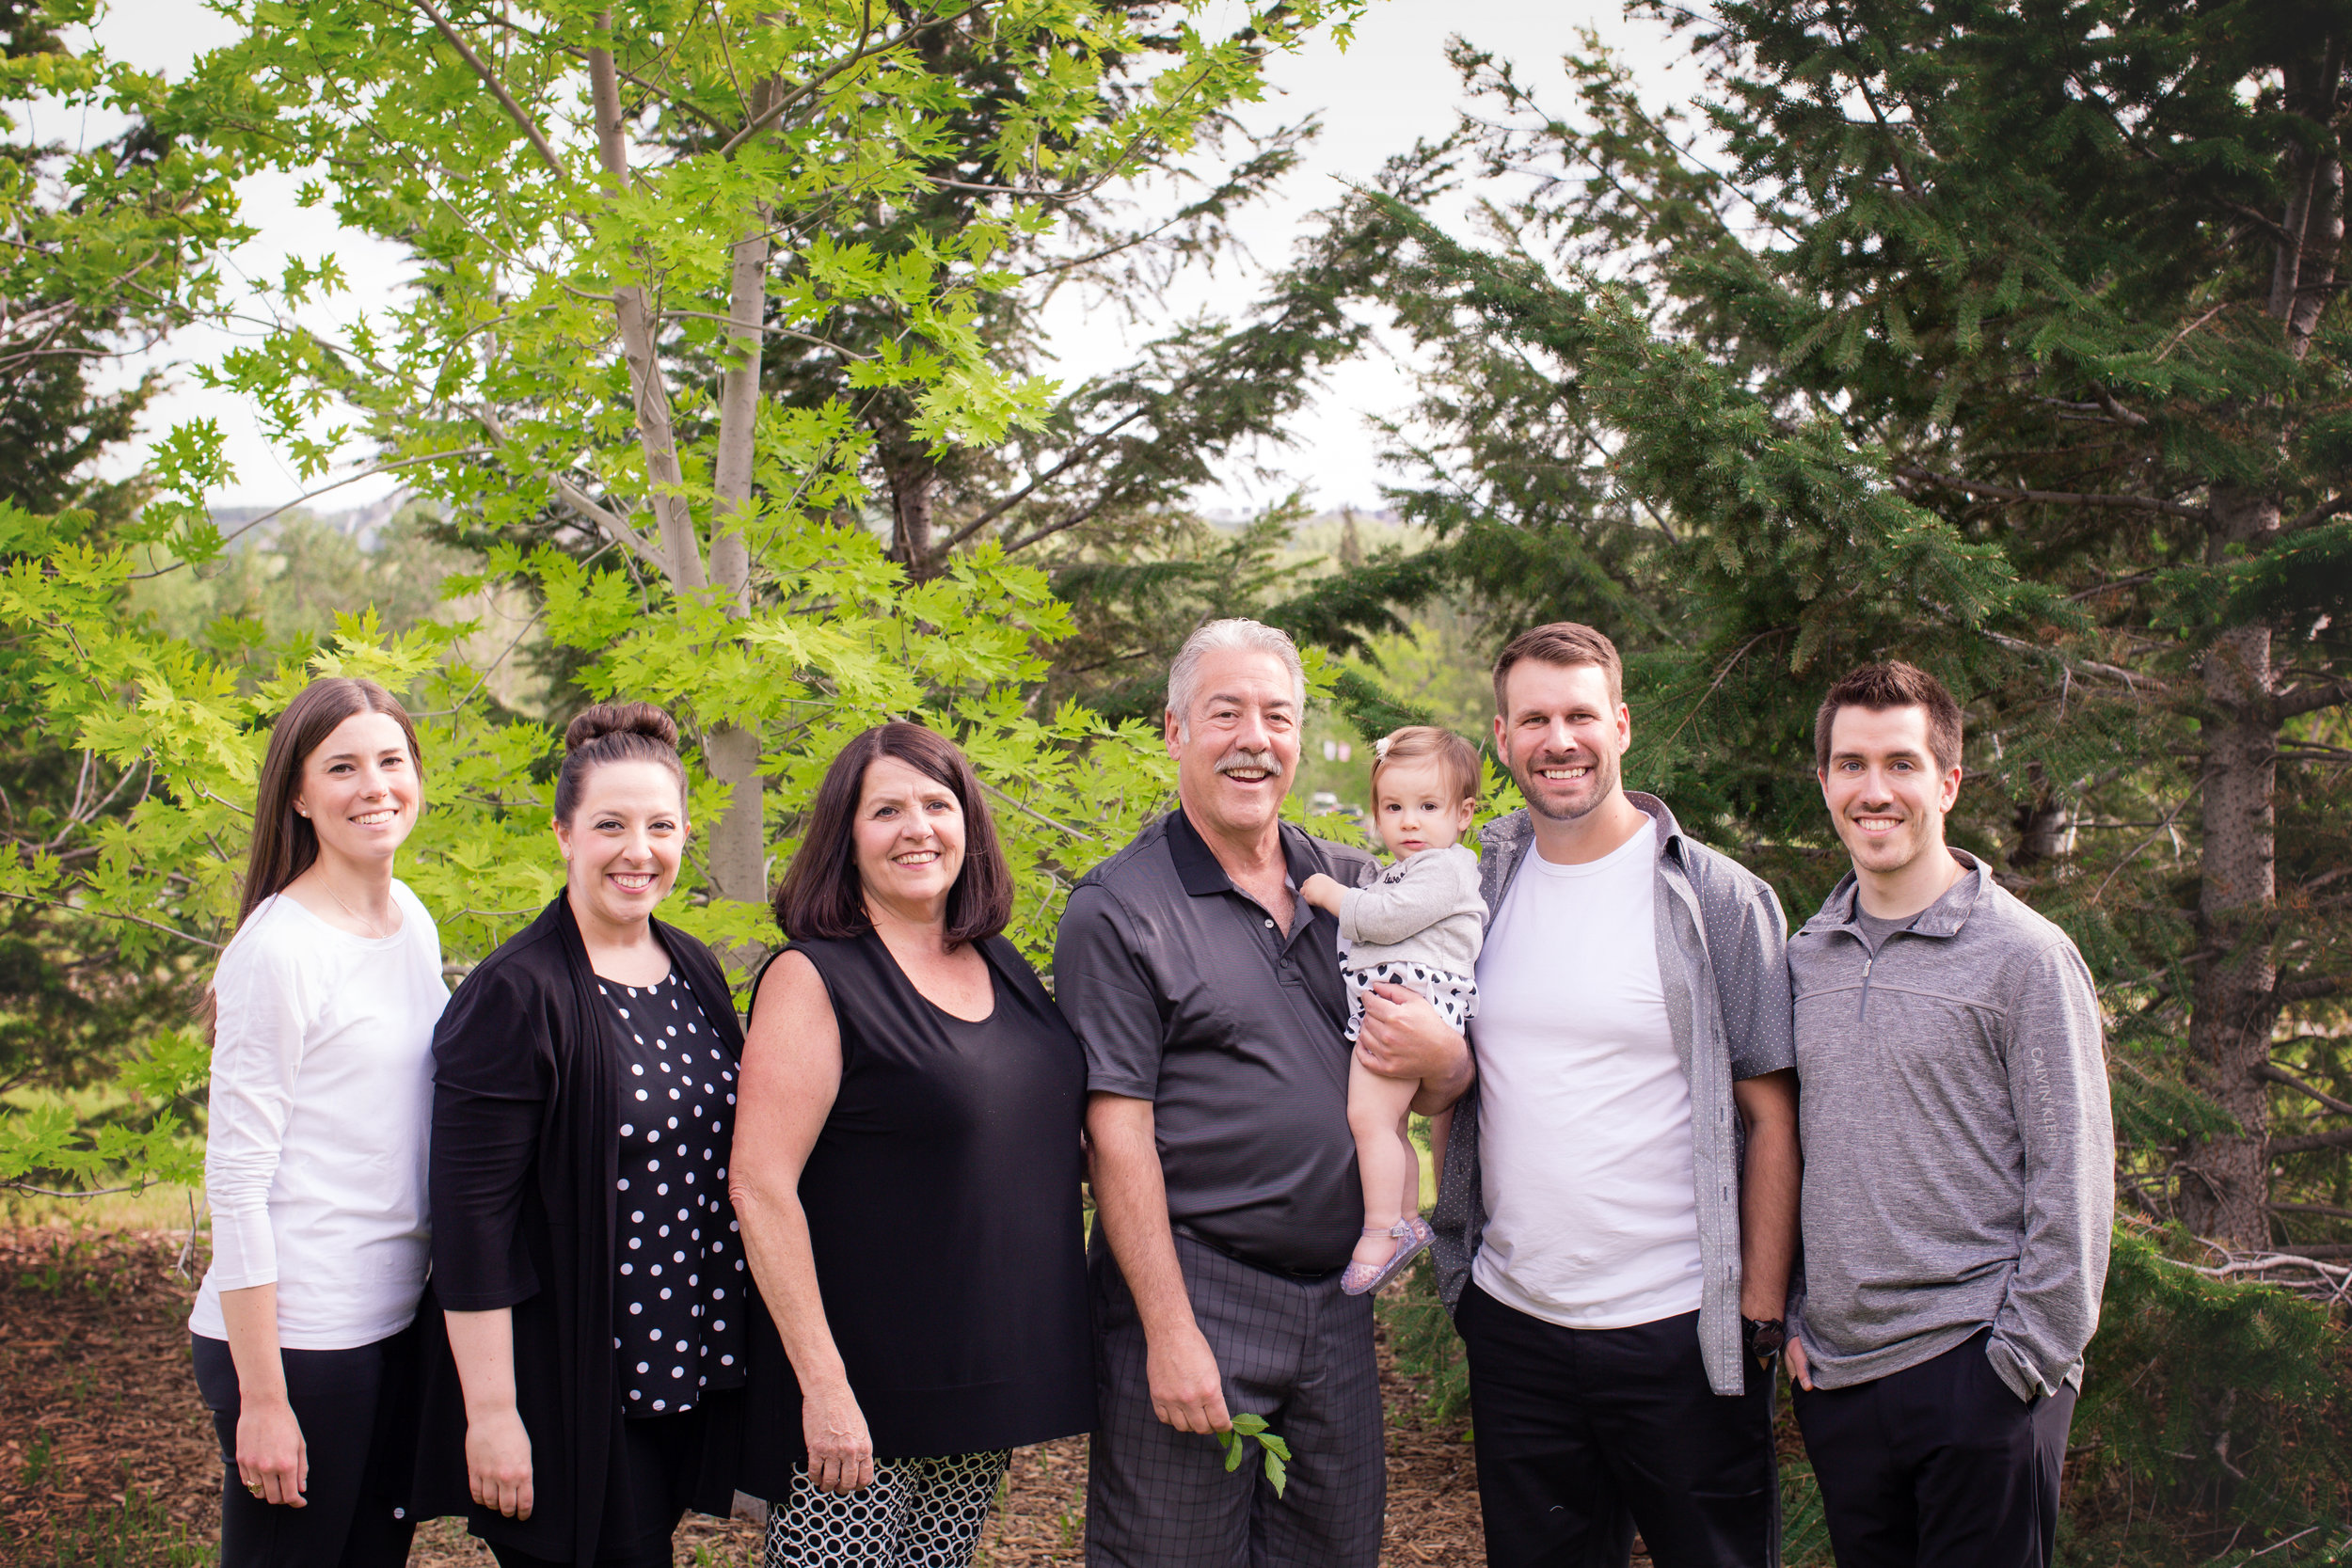 Family photoshoot at Baker's park. We have all the ladies on one side and all the guys on the other side, looking at the camera and smiling. Alberta family photographer. Milashka photography